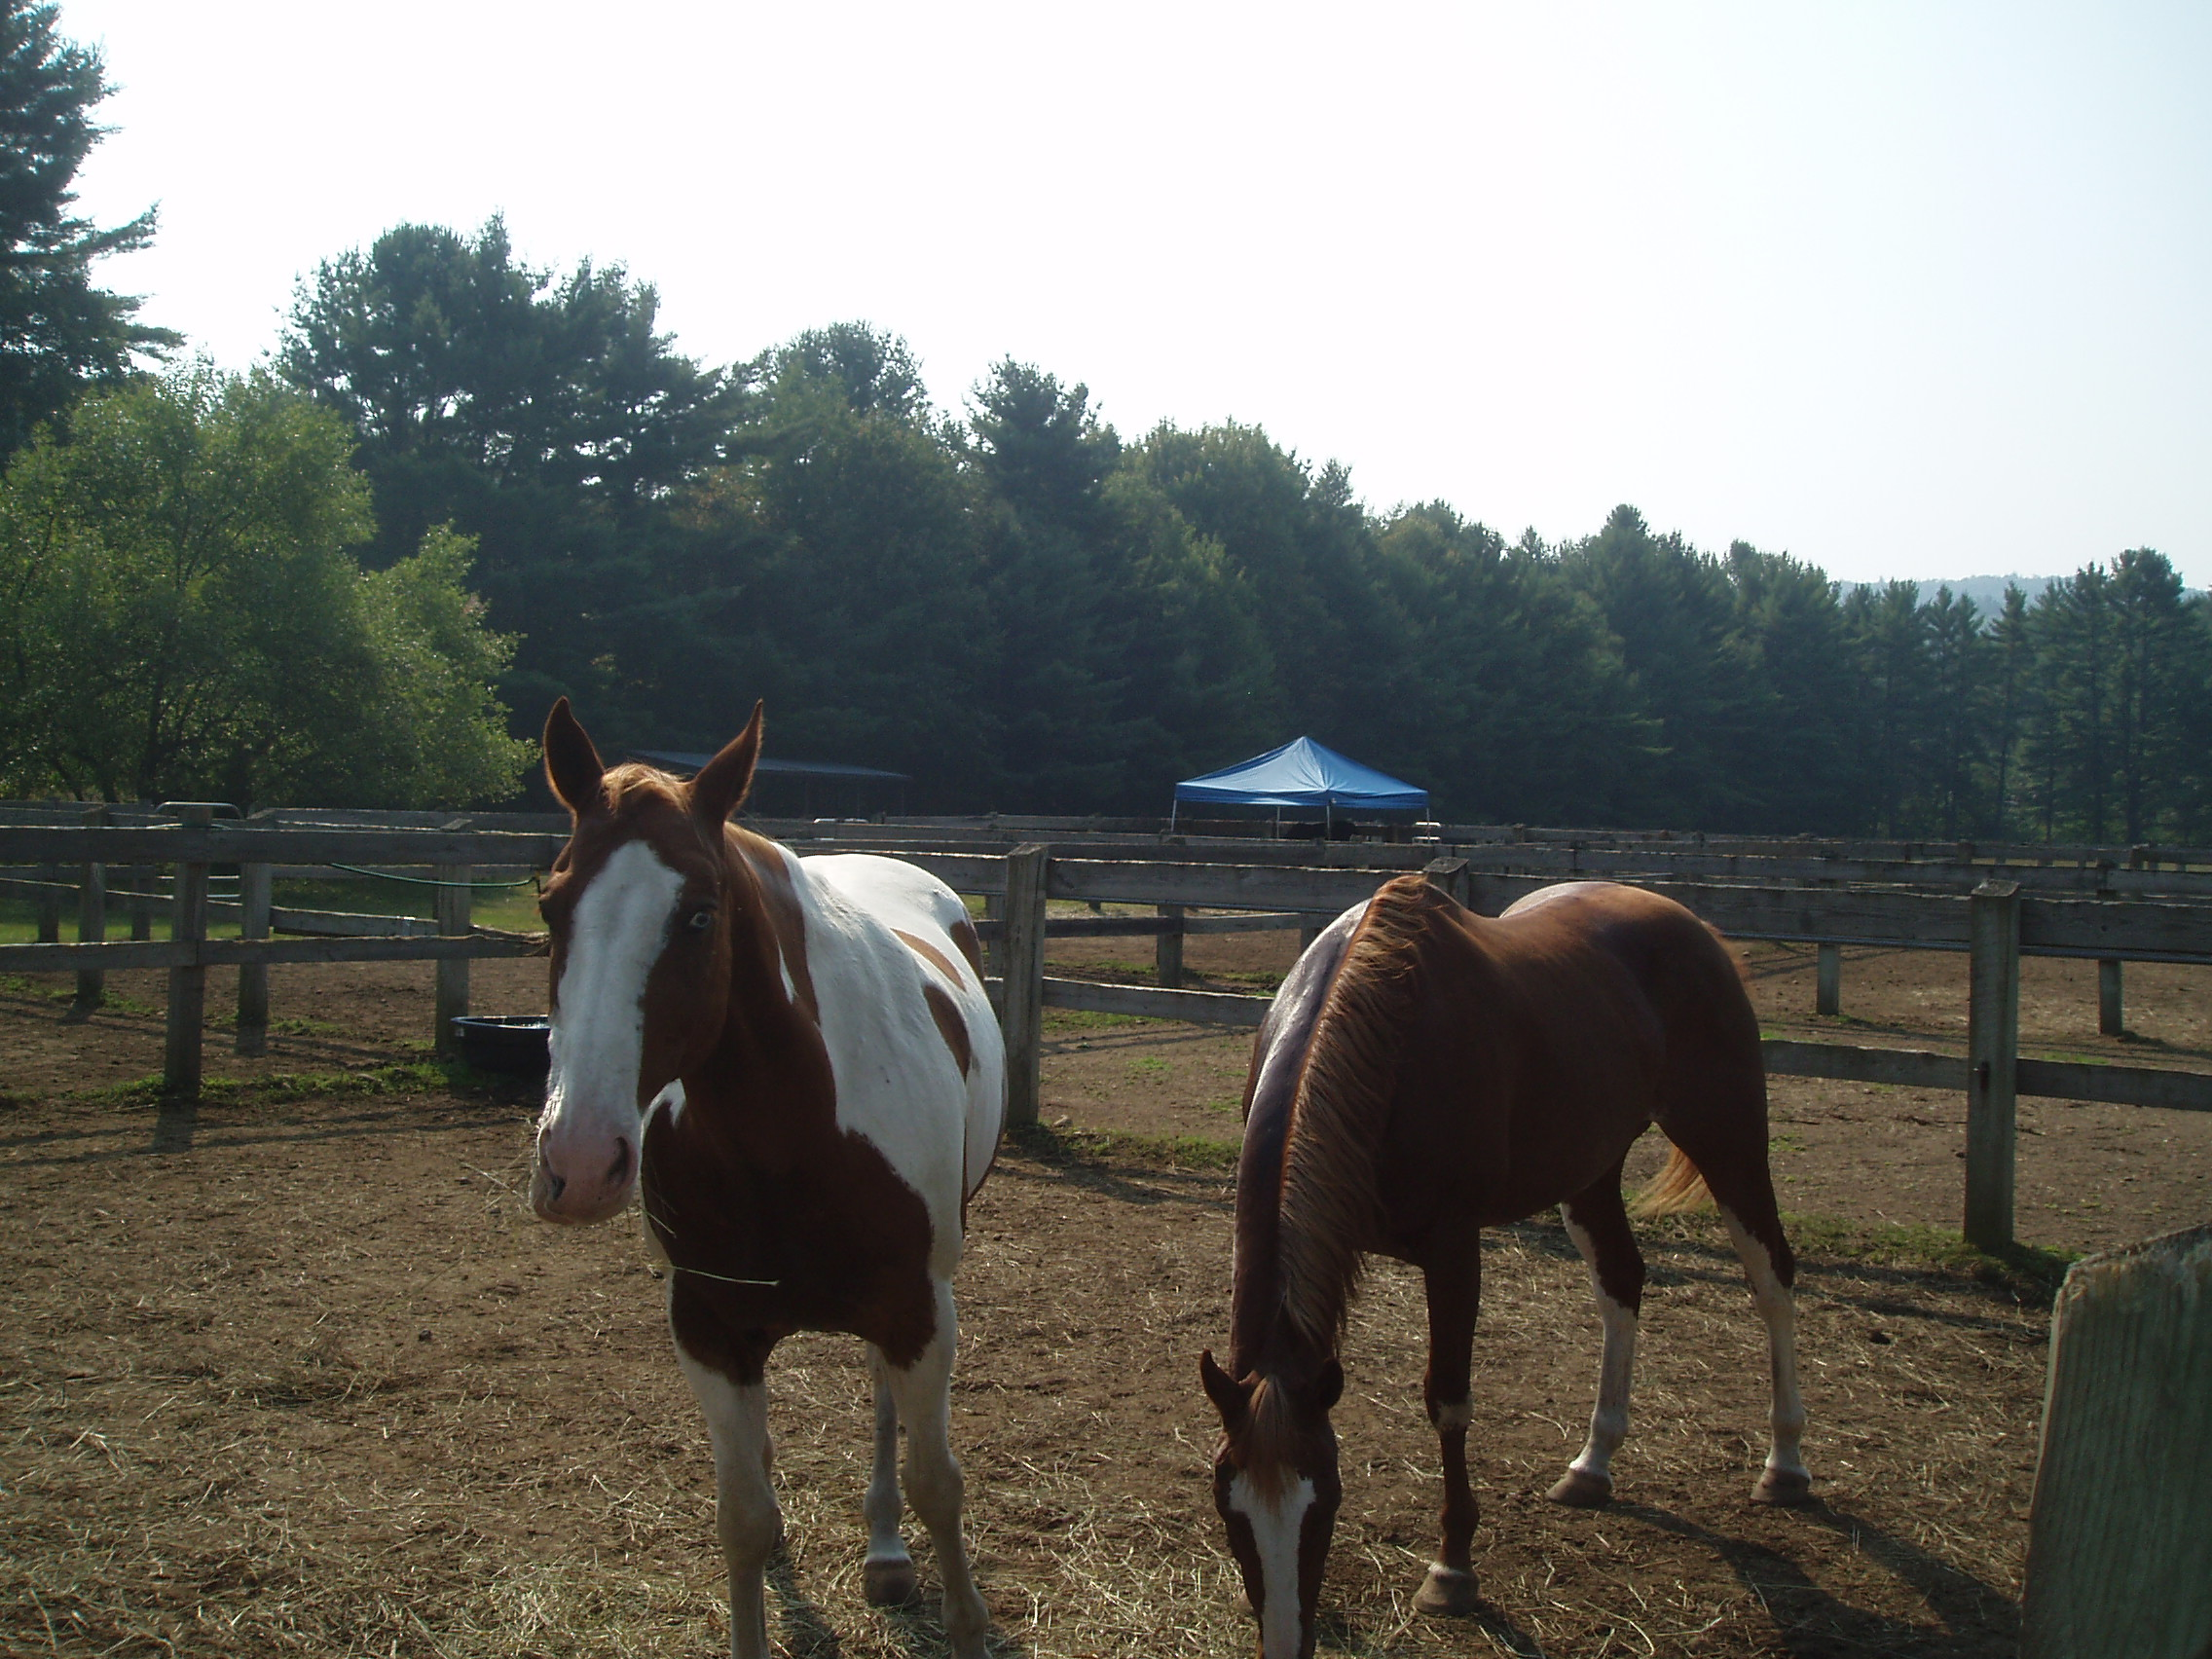 Horses at Luzerne Campground